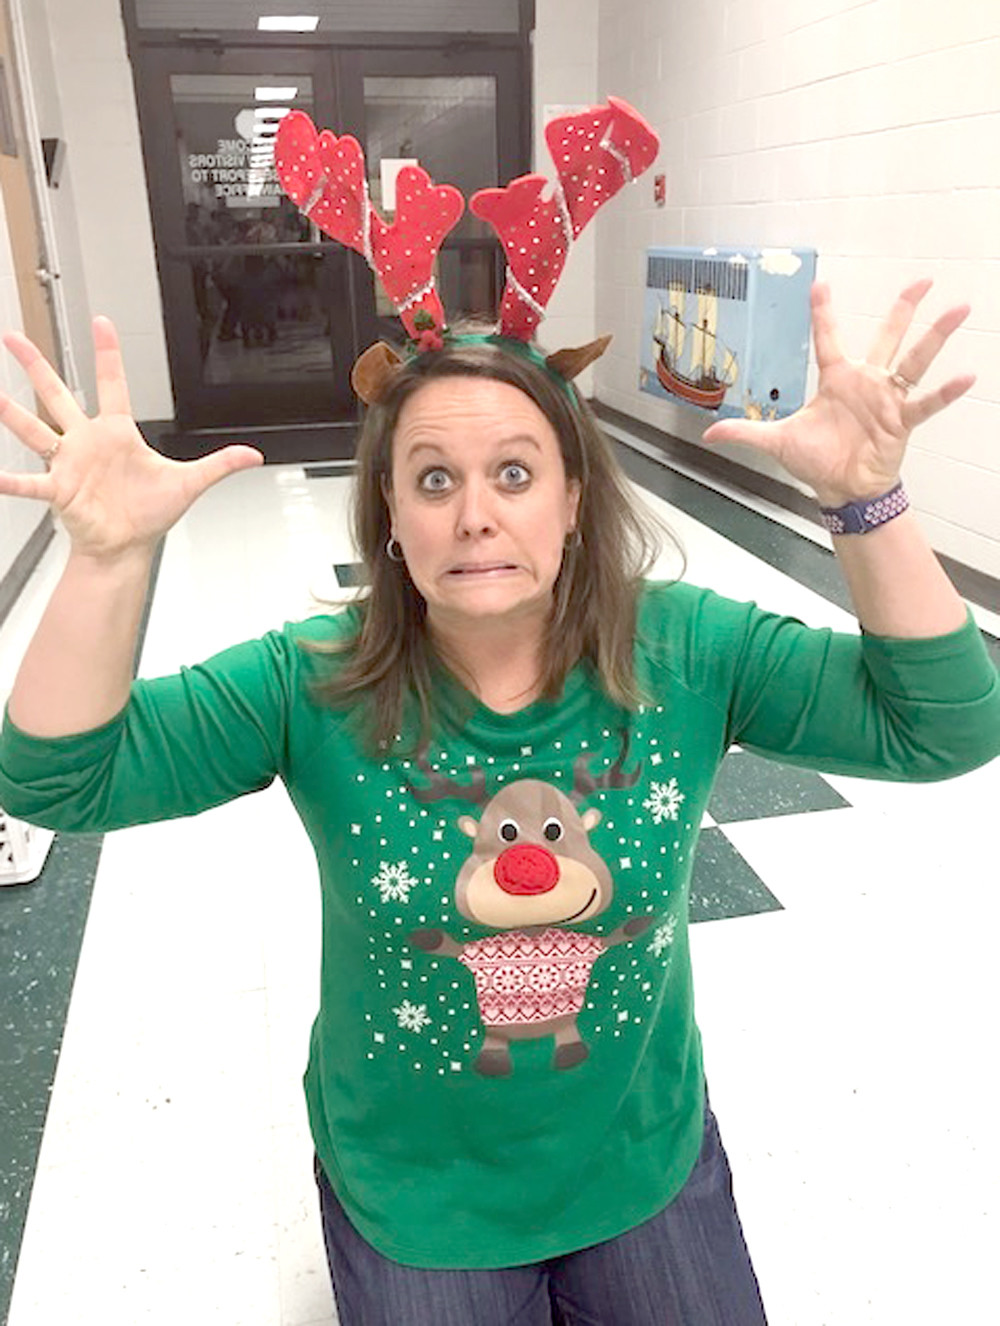 JENNIFER DAVIS, a third-grade teacher, goes all in on the festive fun during a Christmas event at Oak Grove Elementary.